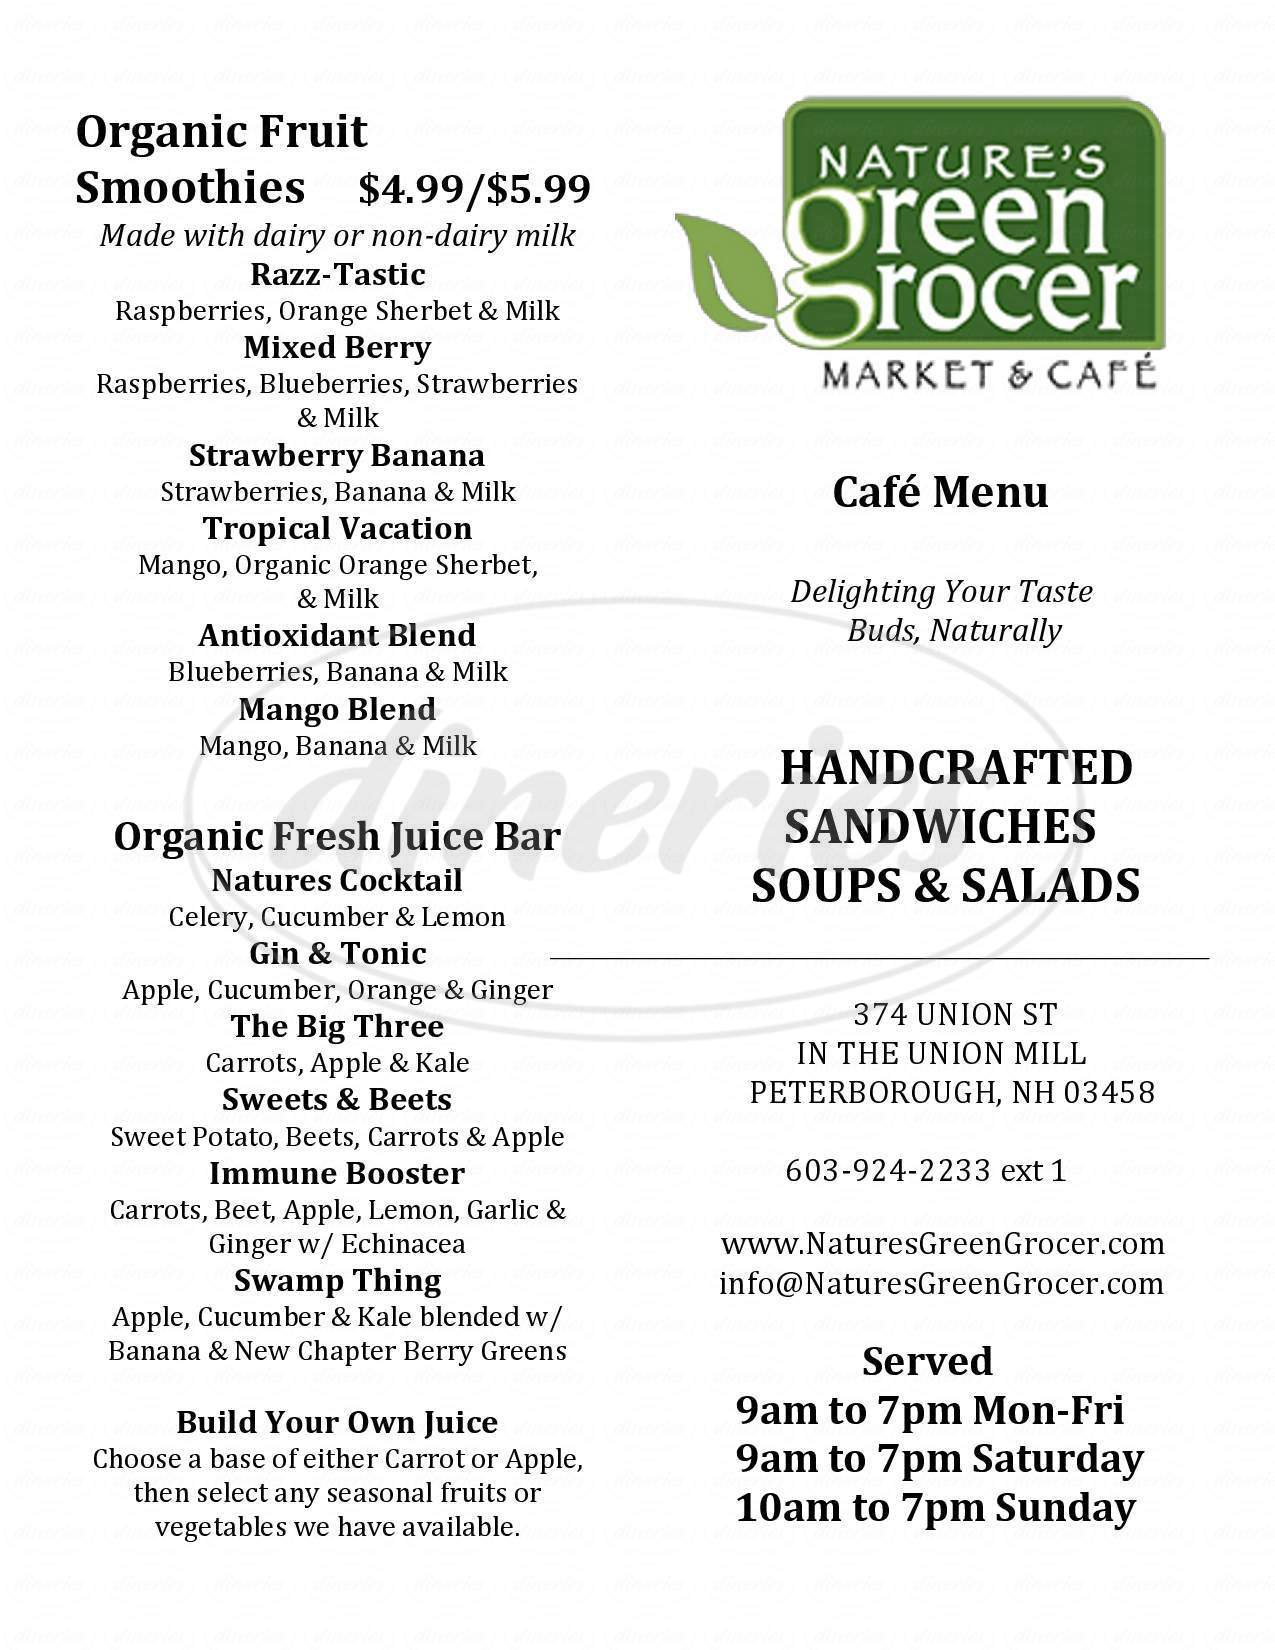 menu for Nature's Green Grocer